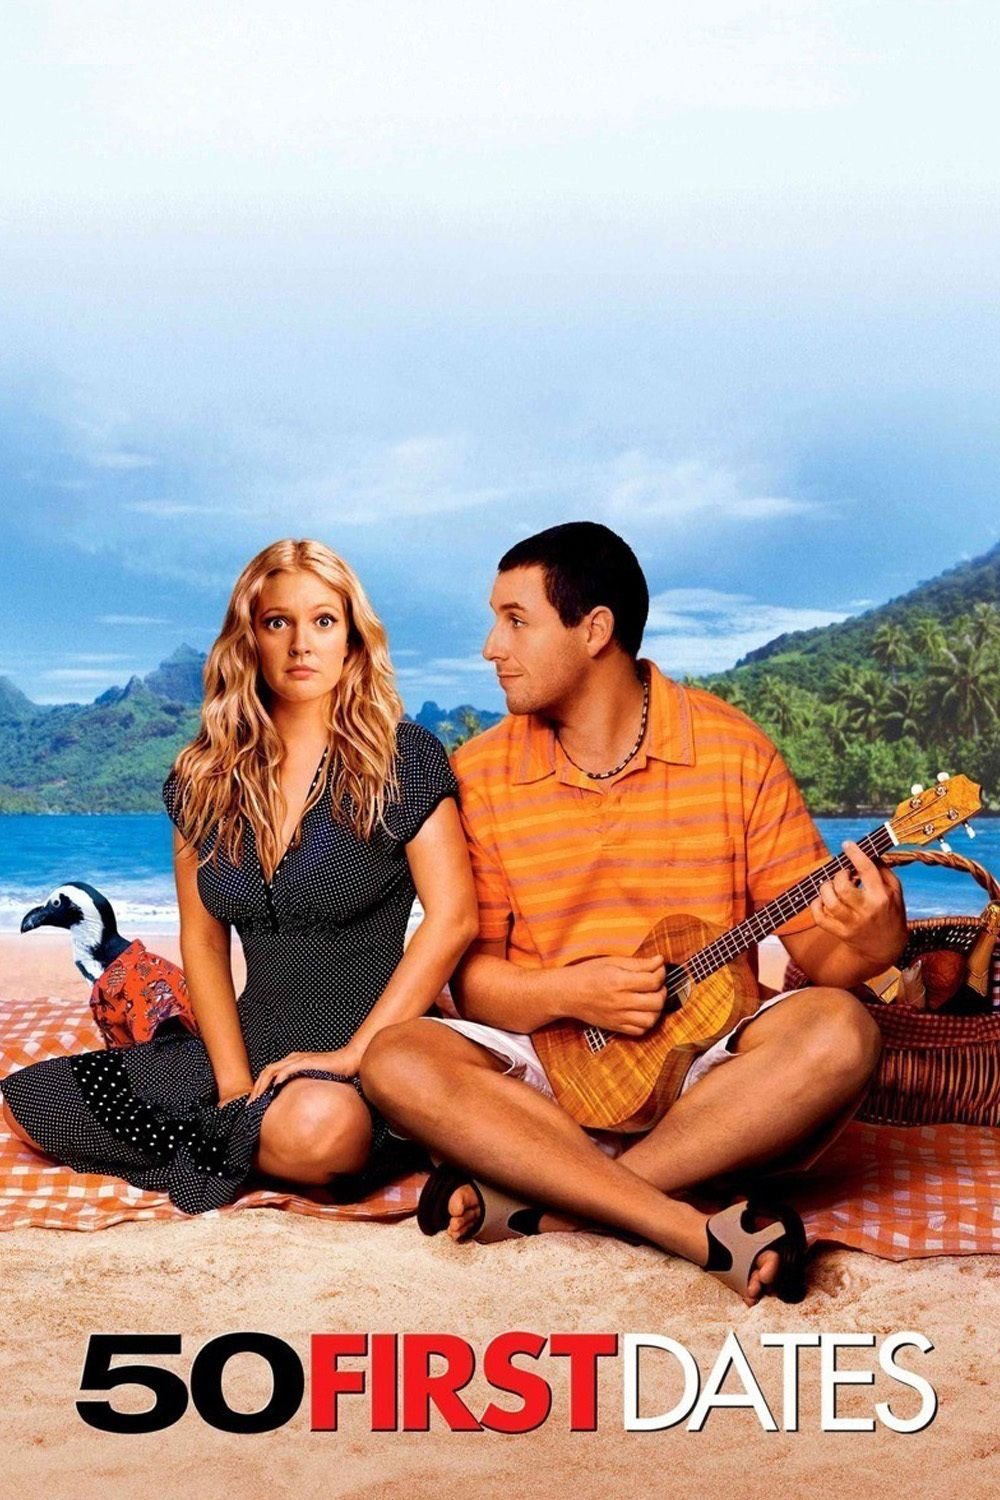 click image to watch 50 First Dates (2004) 50 first